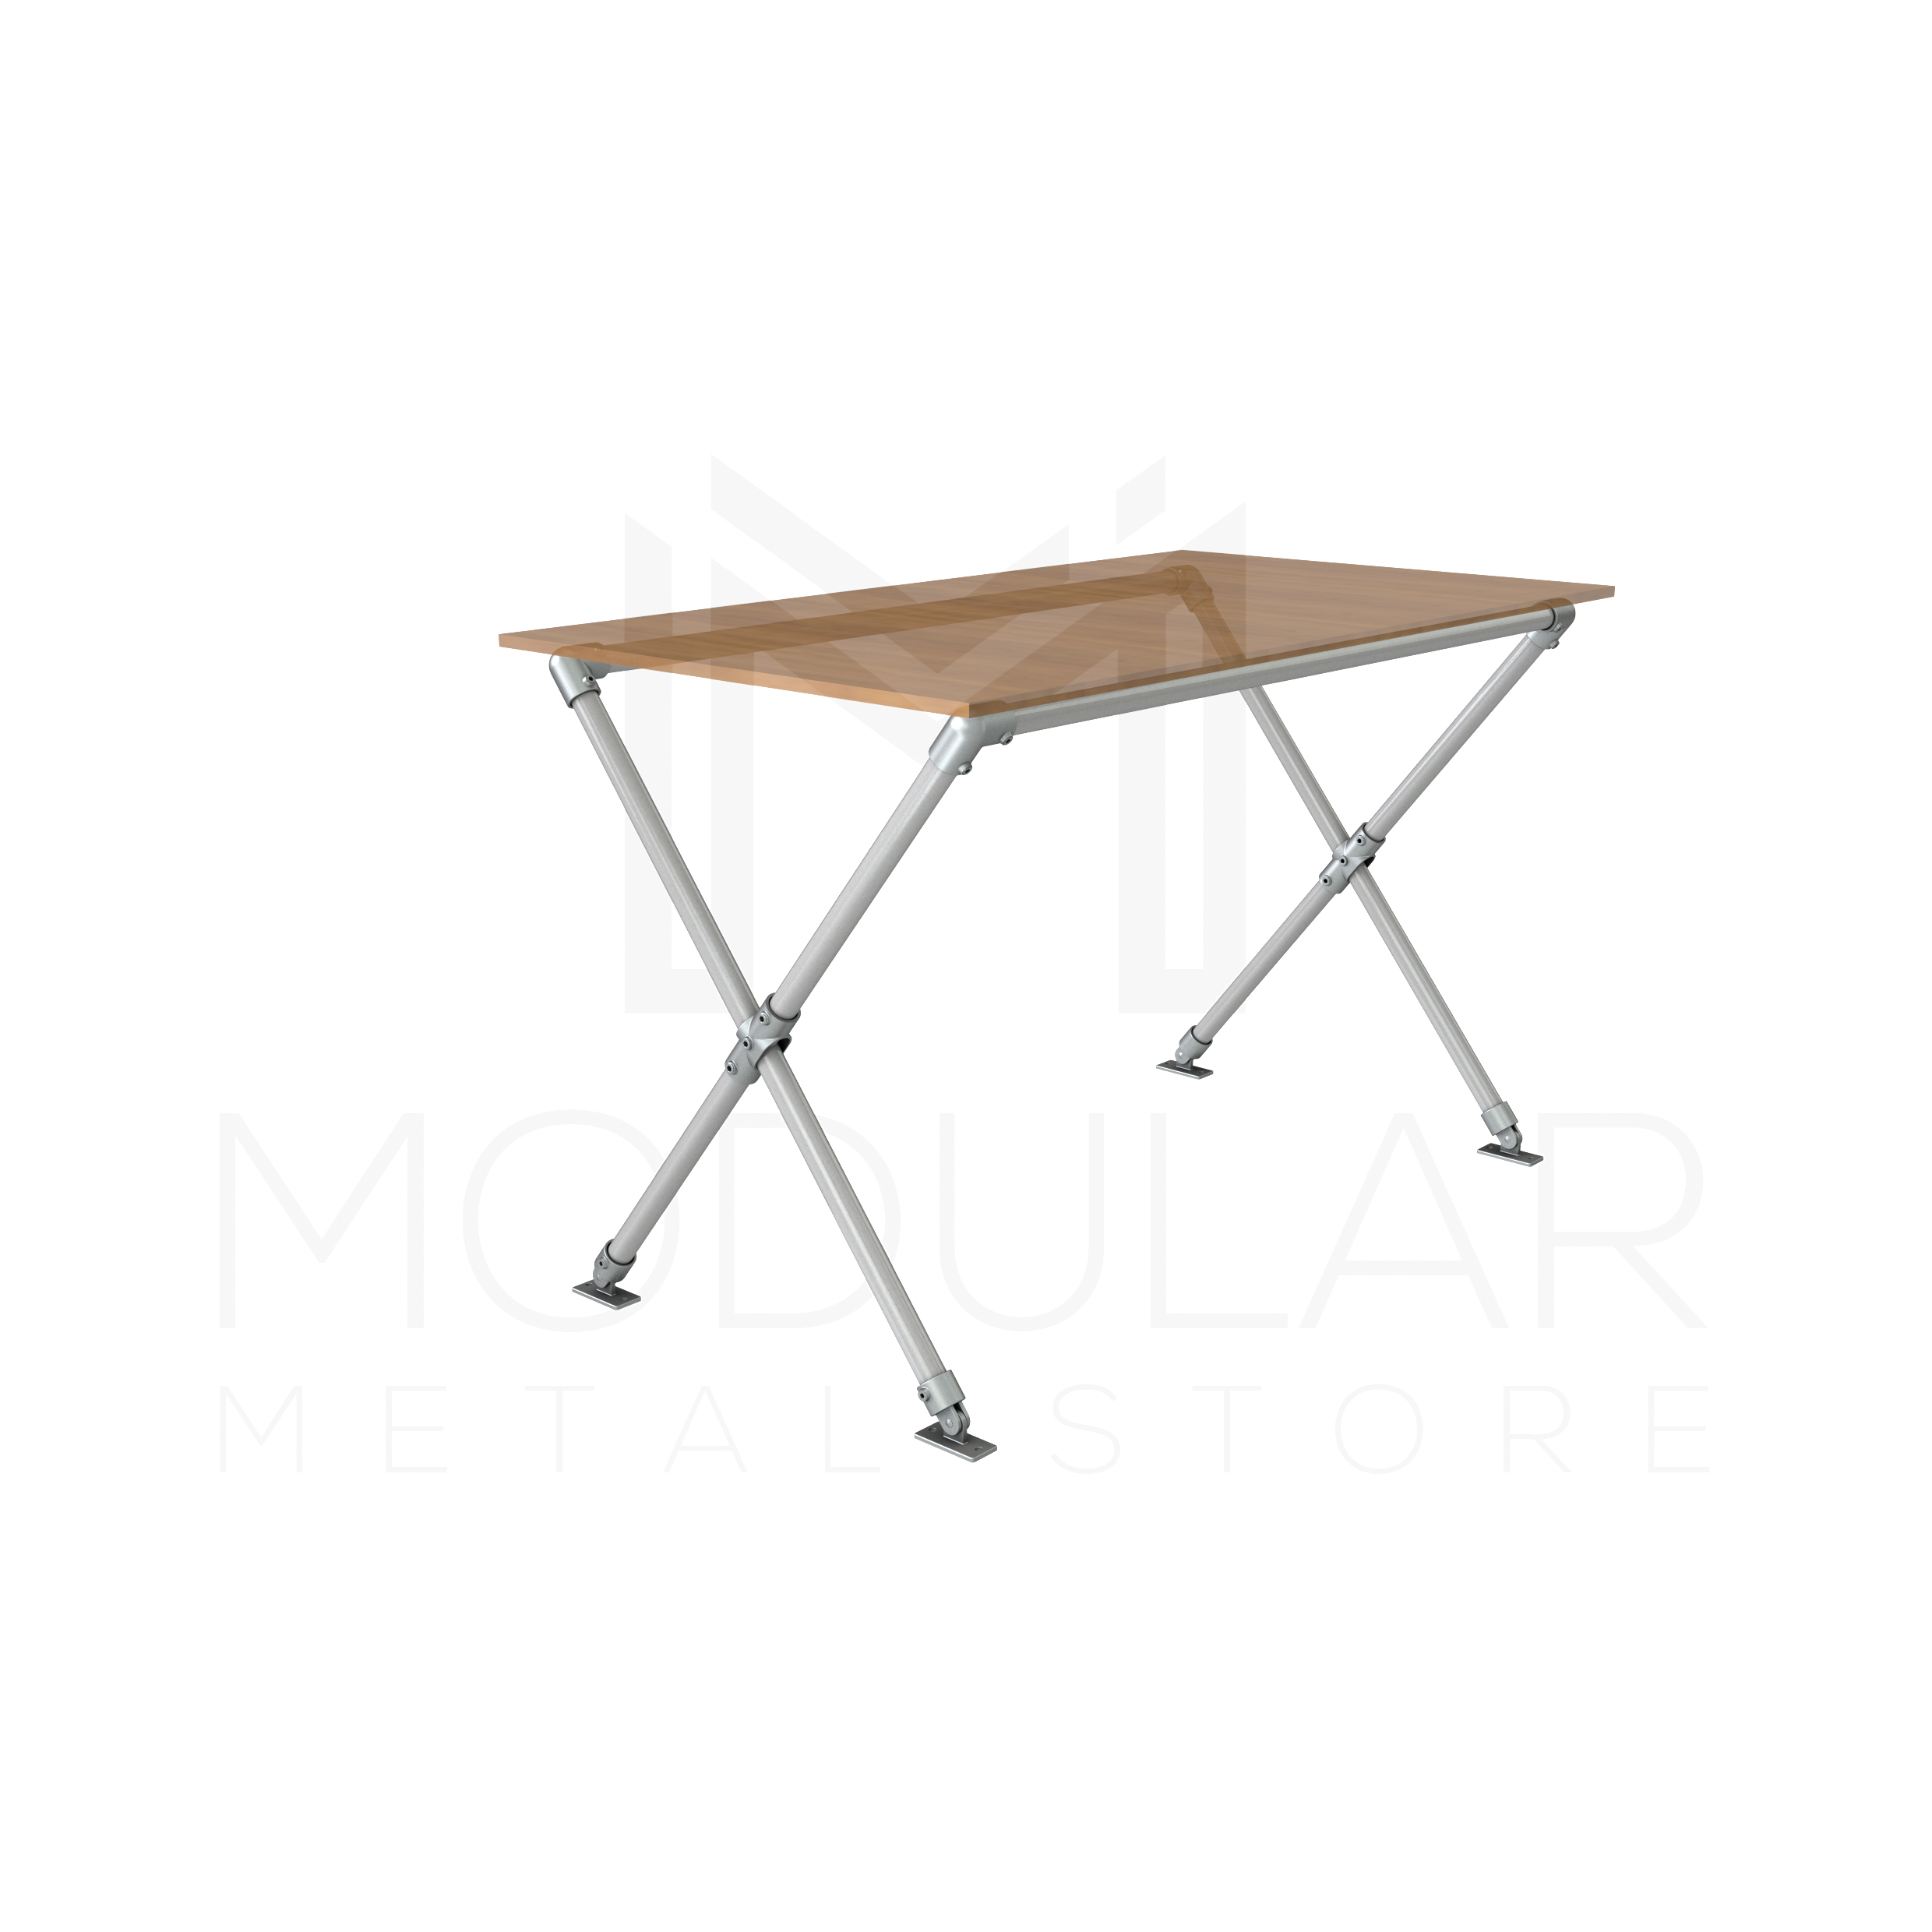 ... Cross Leg Table Frame With Top_PhysCamera001 (0 00 00 00) ...